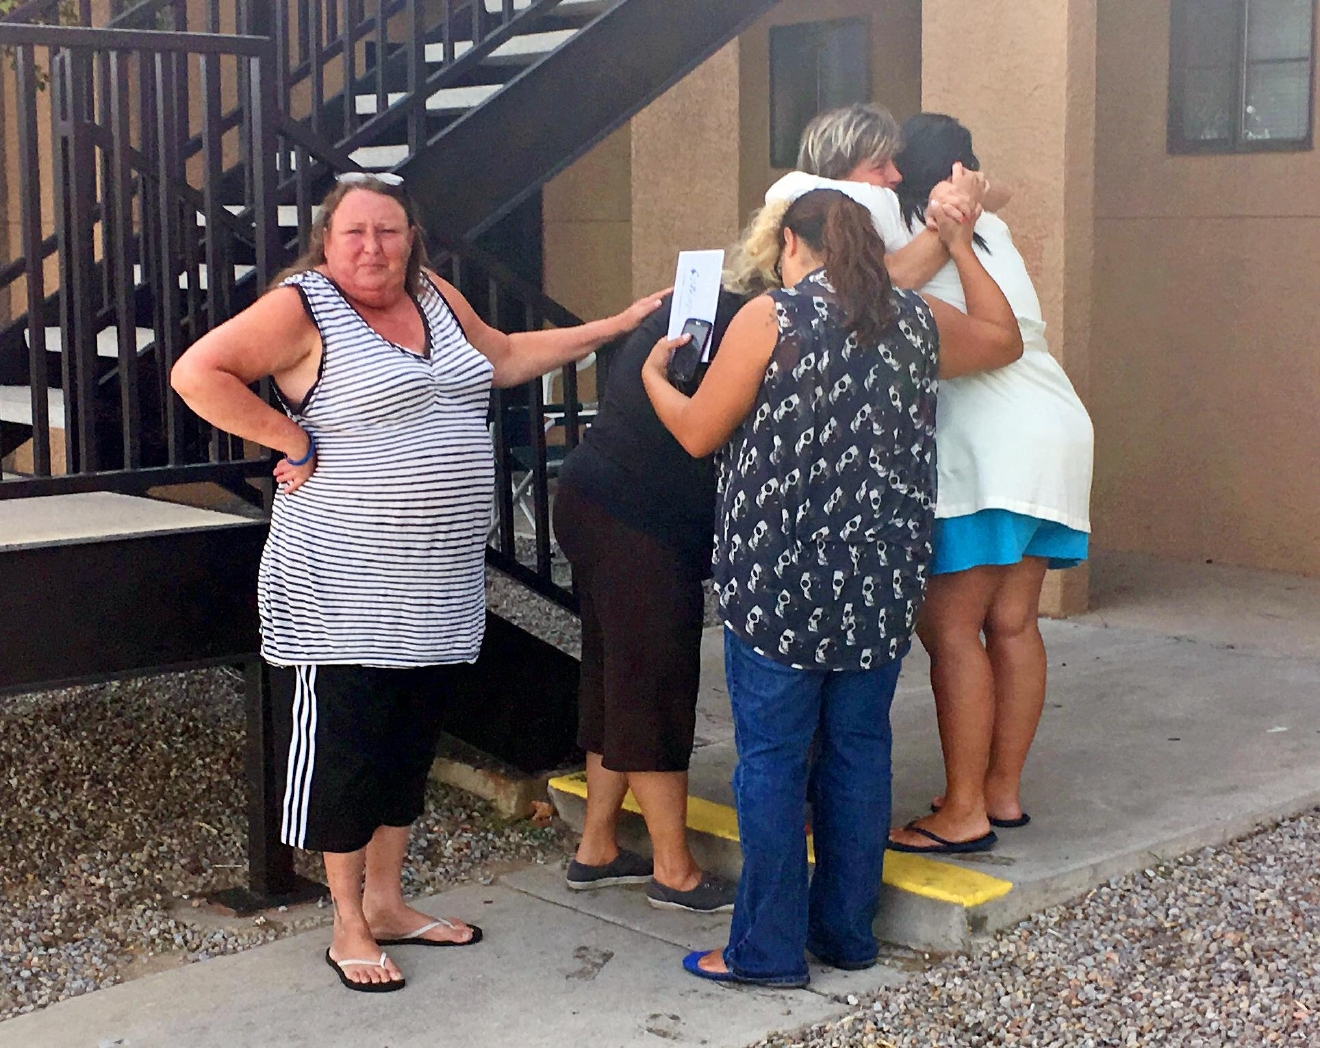 Women mourn near the apartment  in Albuquerque, N.M., Thursday, Aug. 25, 2016, where the body of a 10-year-old girl who police said was sexually assaulted, strangled then dismembered was found. On the day the girl was going to celebrate her 10th birthday, she was found dead Wednesday in her family's apartment by Albuquerque police, her dismembered remains lying under a burning blanket. The girl's mother, 35-year-old Michelle Martens, her 31-year-old boyfriend, Fabian Gonzales, and his 31-year-old cousin, Jessica Kelley, are facing charges. (AP Photo/Russell Contreras)